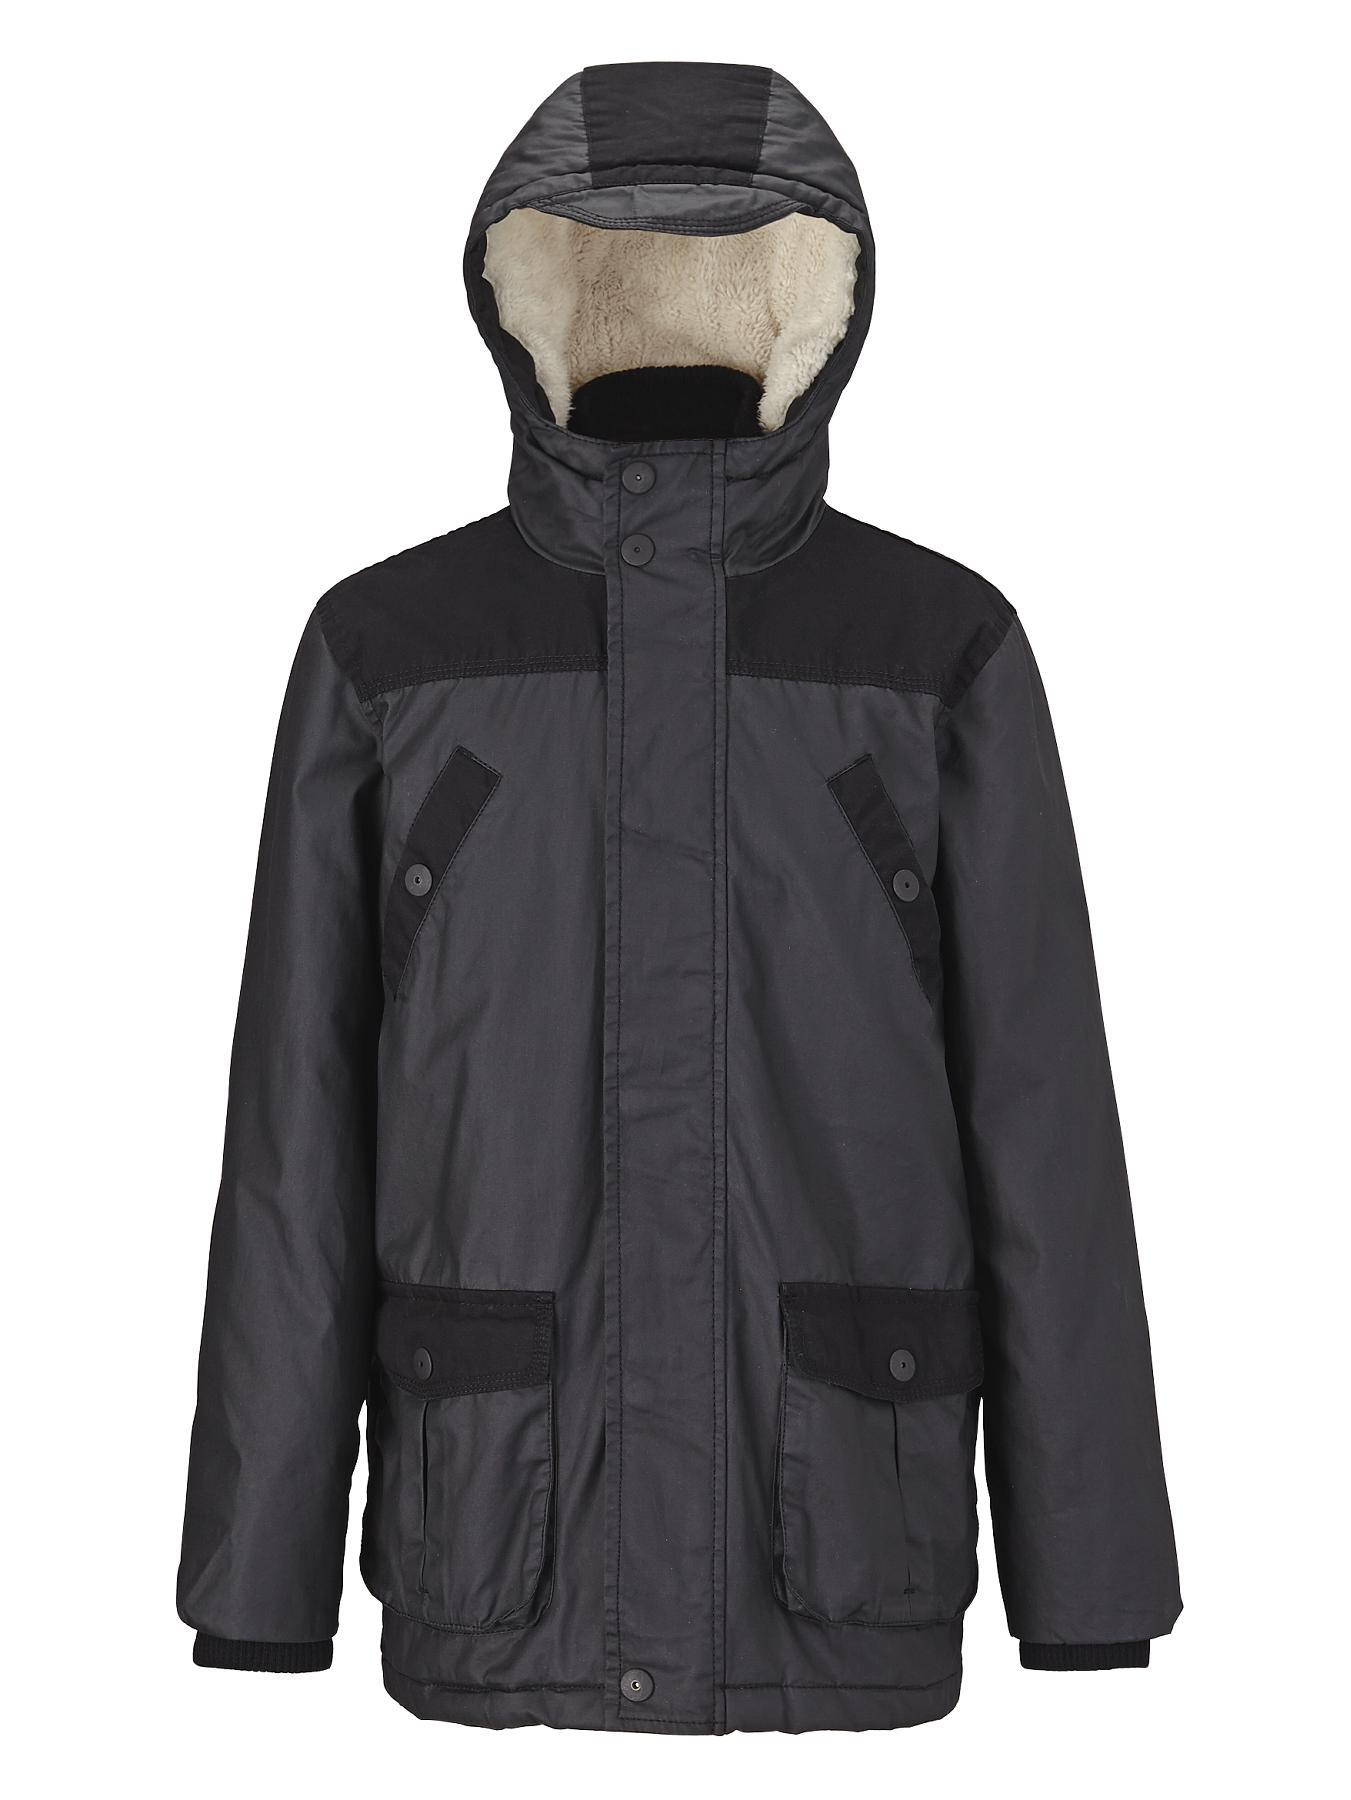 Boys Waxed Look Hooded Jacket, Black